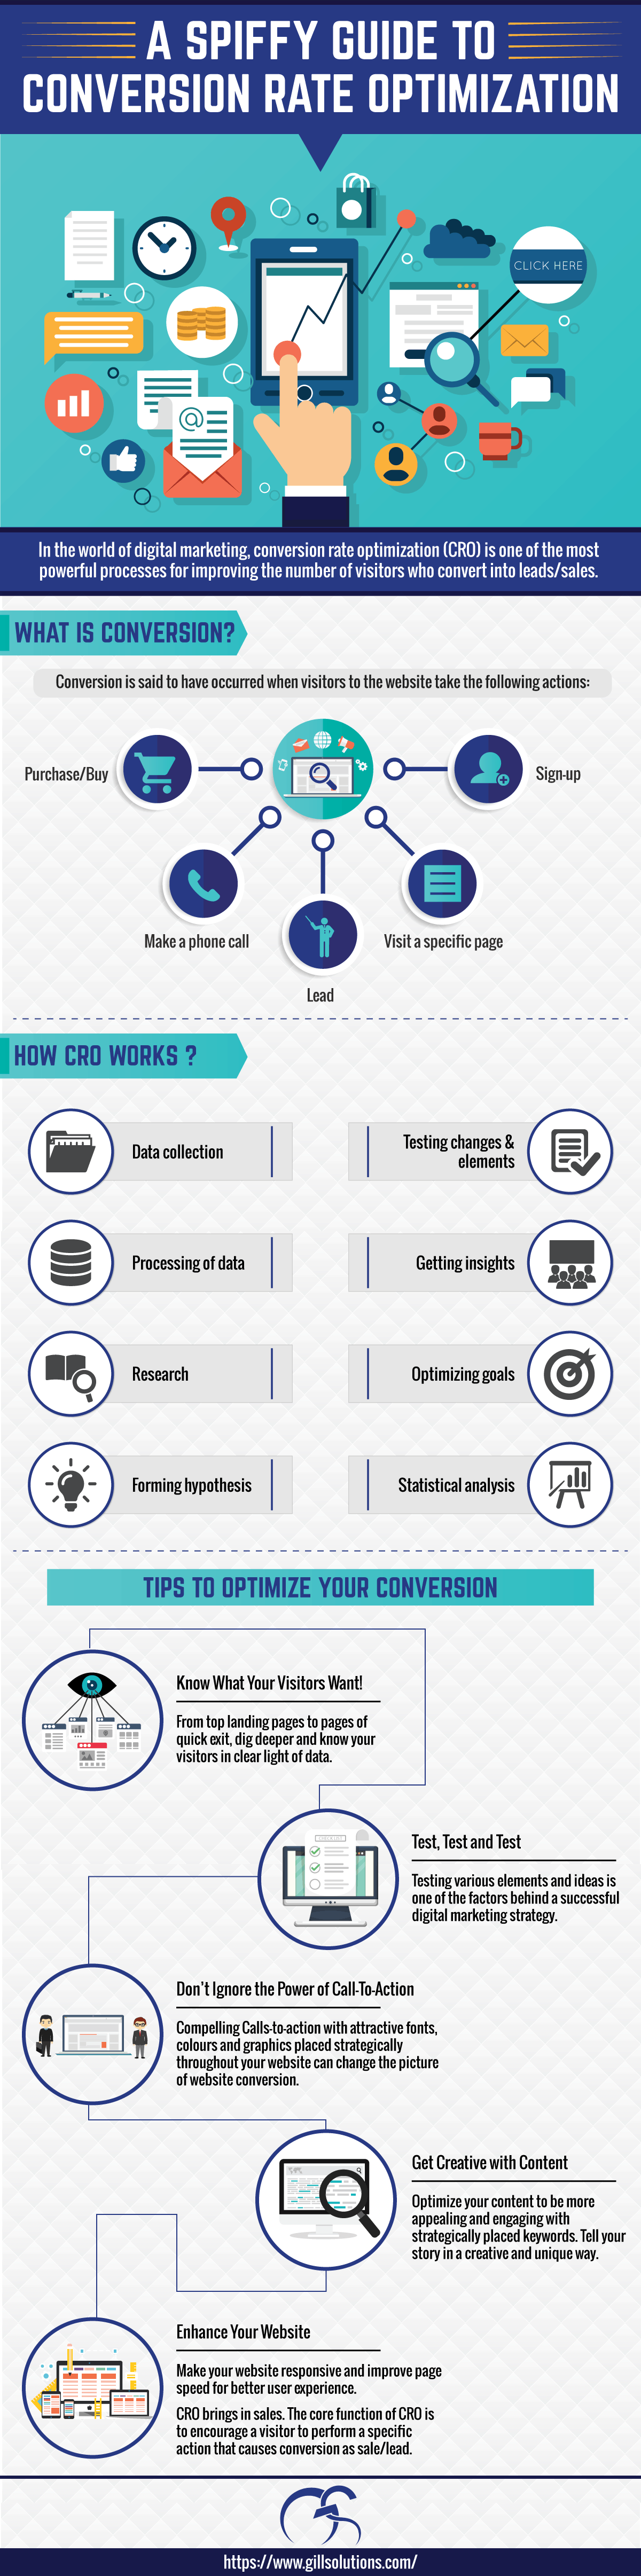 Conversion Rate Optimization's Contribution to Digital Marketing